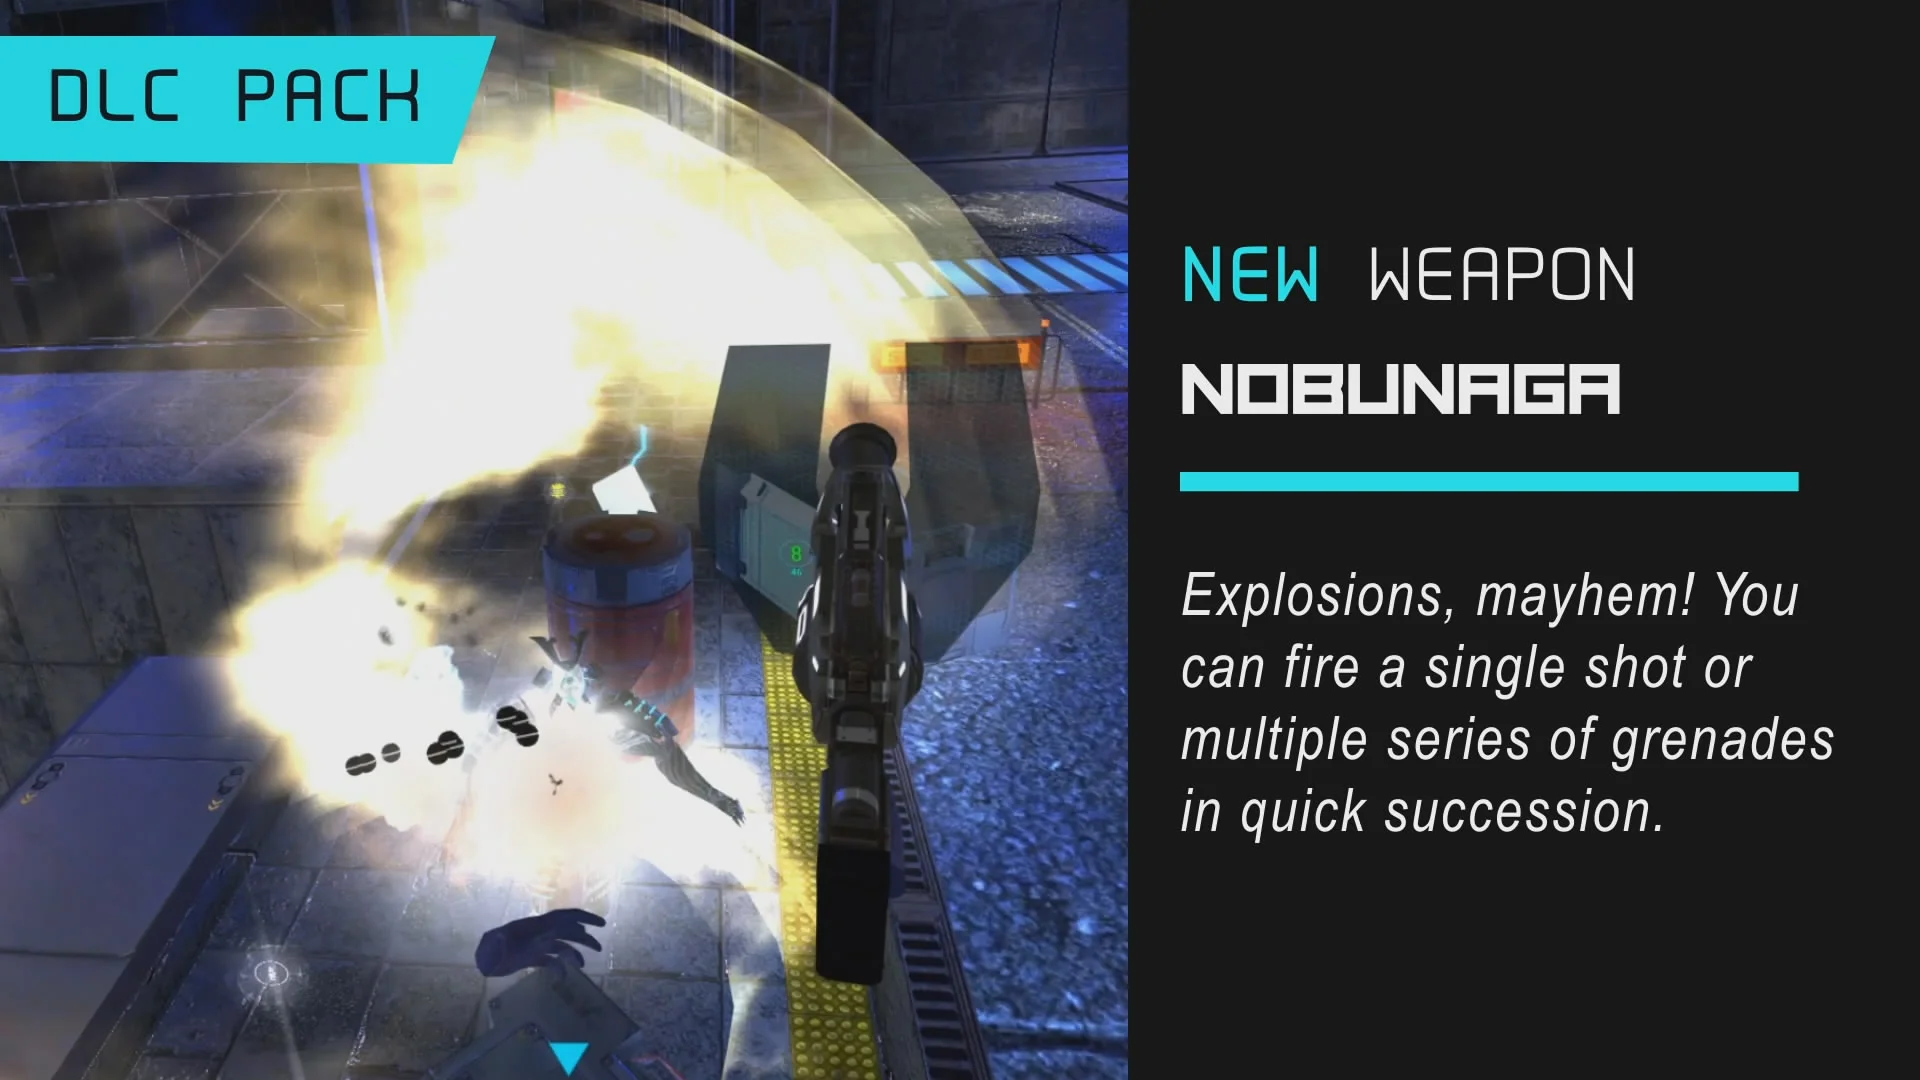 """The Sairento PSVR update finally adds the long-anticipated Nobunaga, the explosive weapon that can fire """"multiple series of grenades in quick succession."""""""